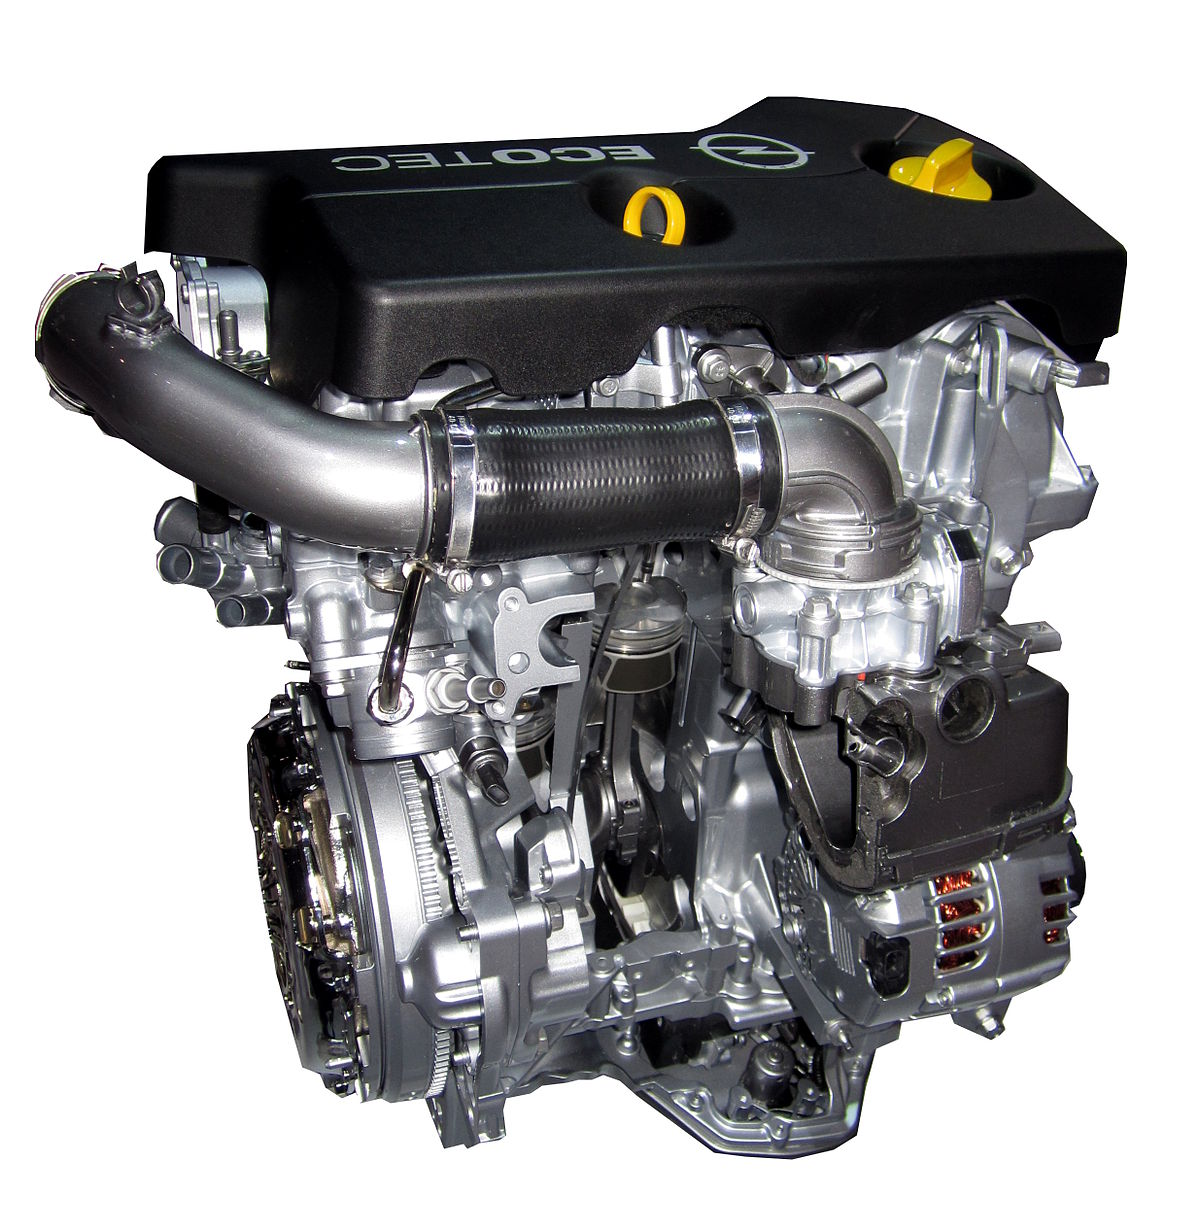 GM small gasoline engine - Wikipedia